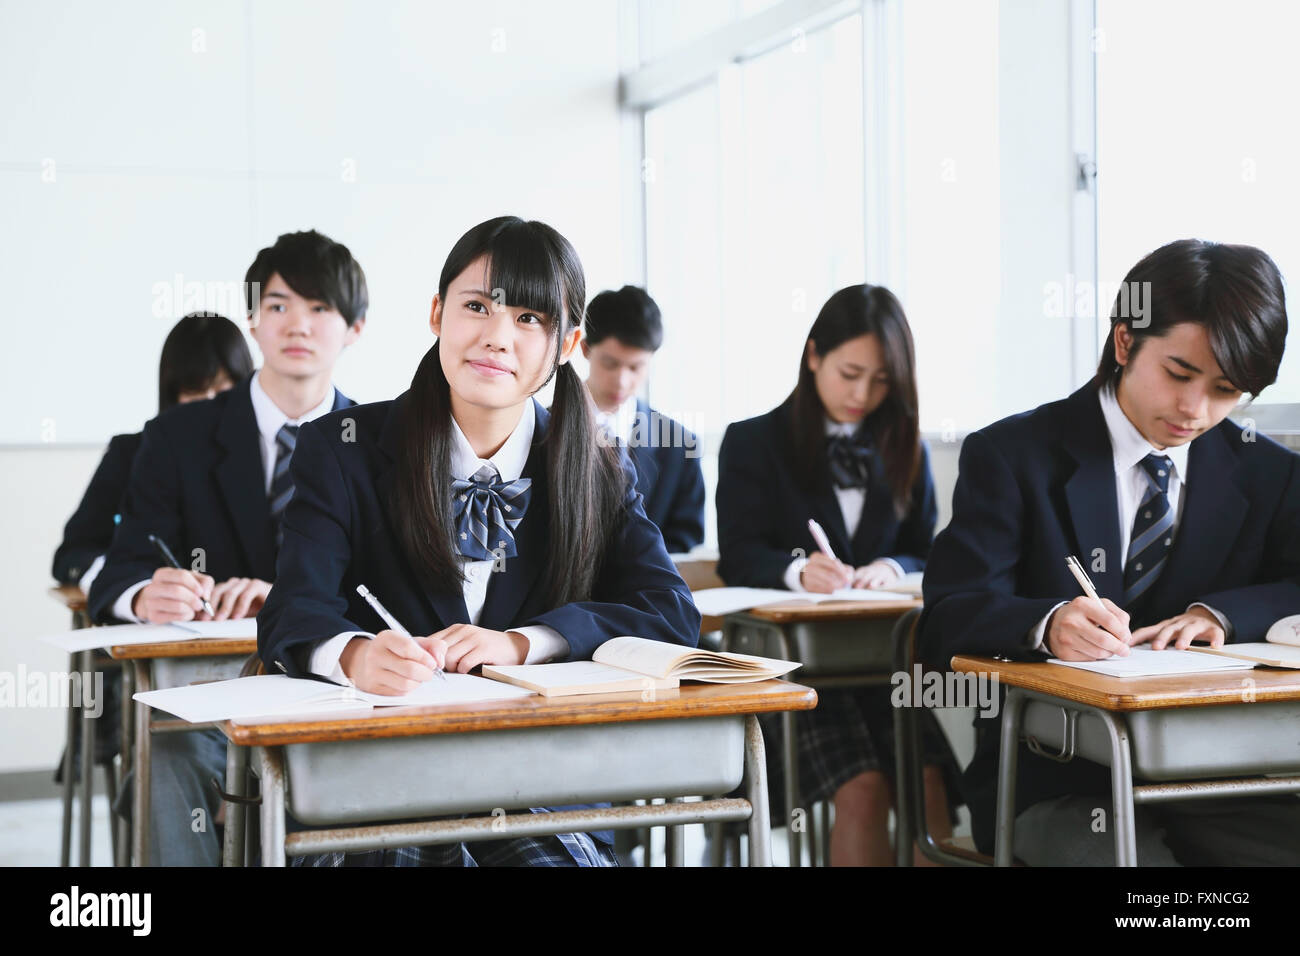 Japanese High School Students During A Lesson Stock Photo